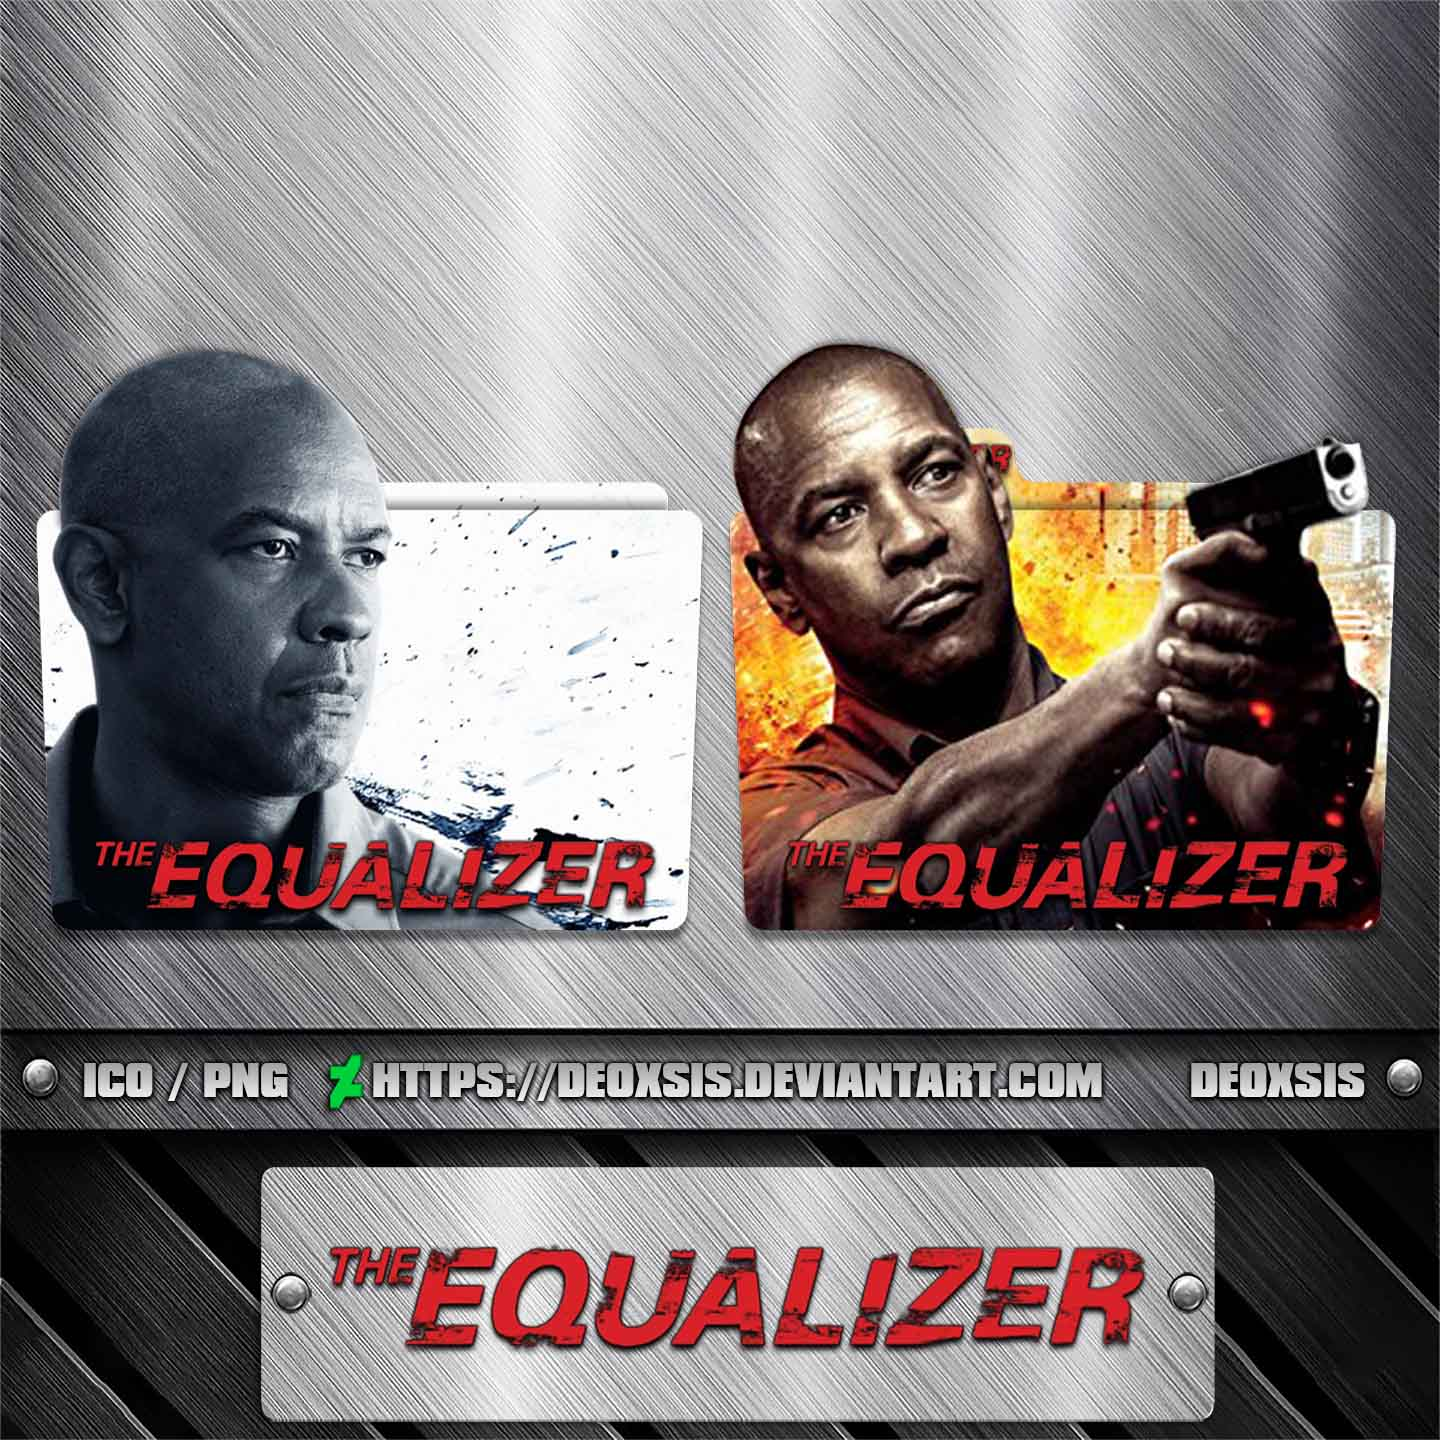 The Equalizer 2014 Folder Icon Pack By Deoxsis On Deviantart